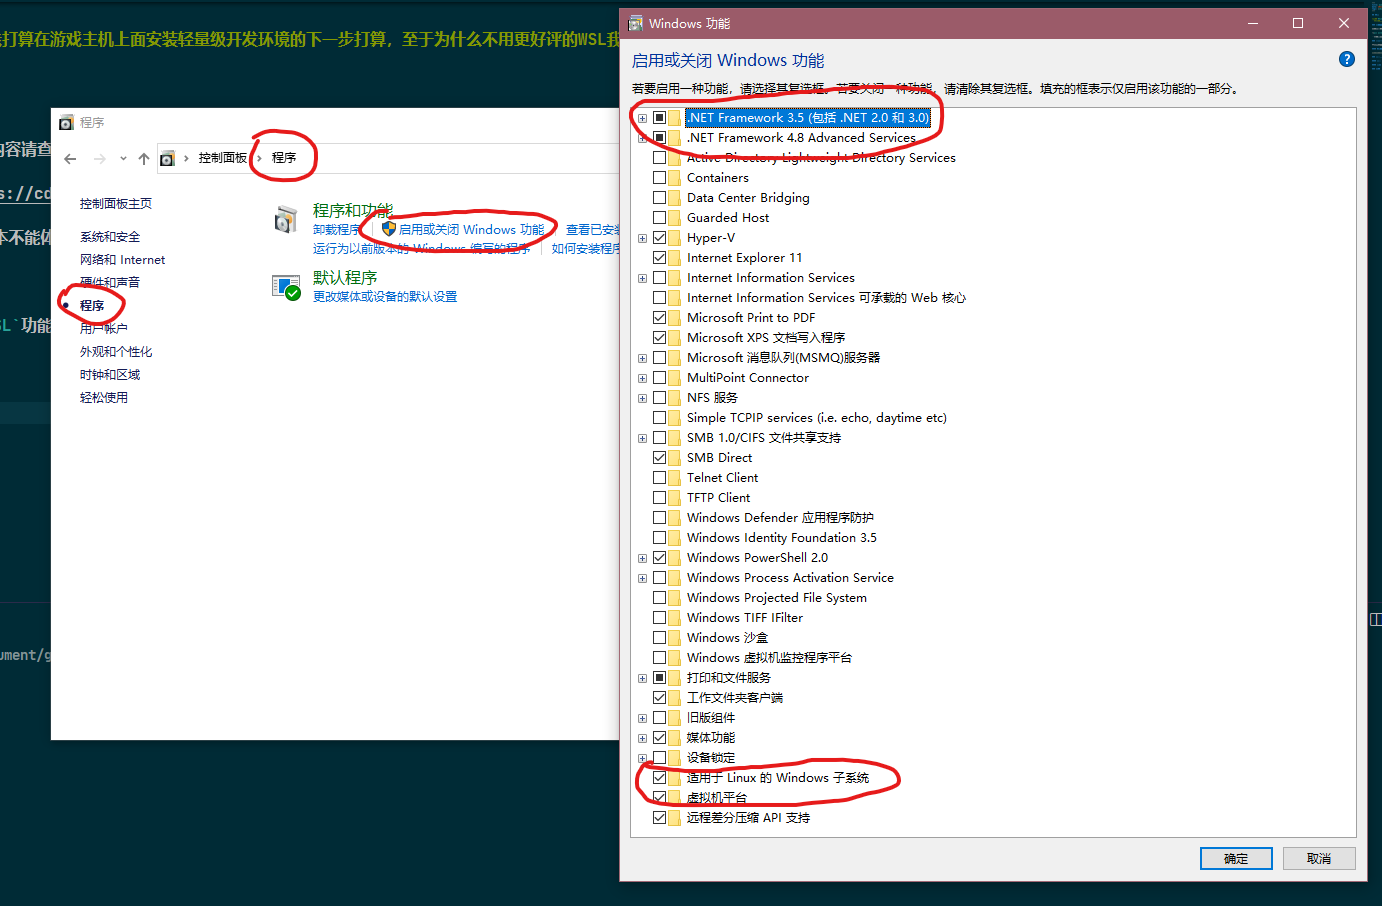 pic enable windows feature